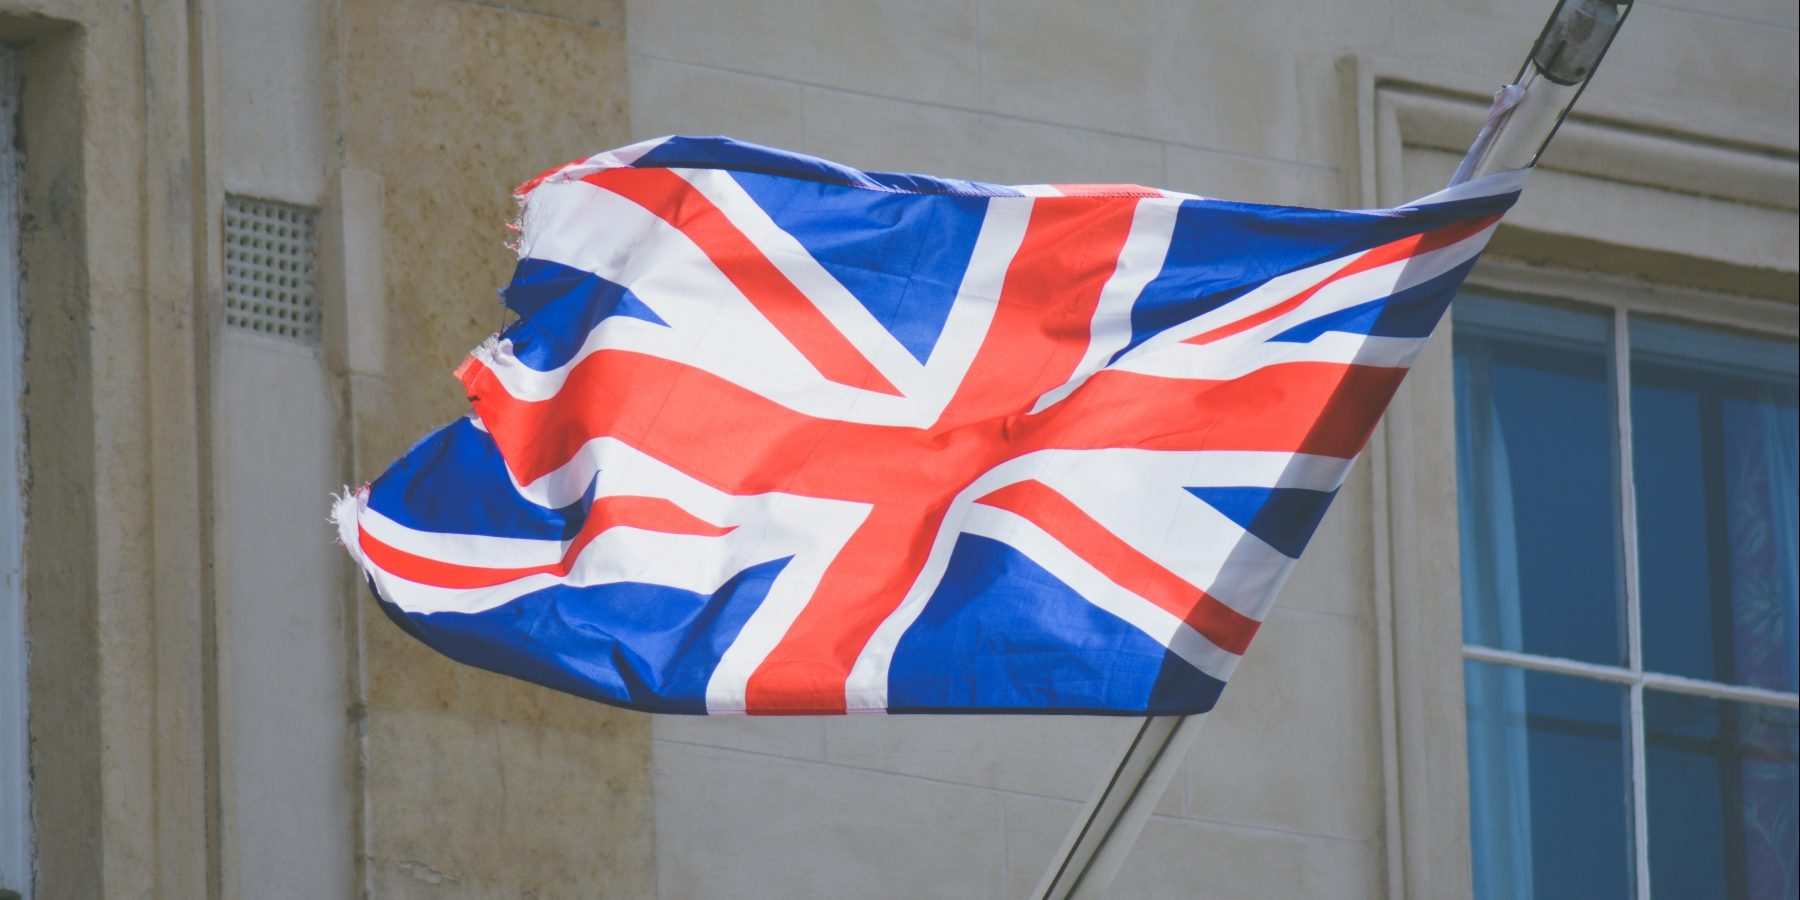 UK_flag-photo-1464021025634-49b81a77a858